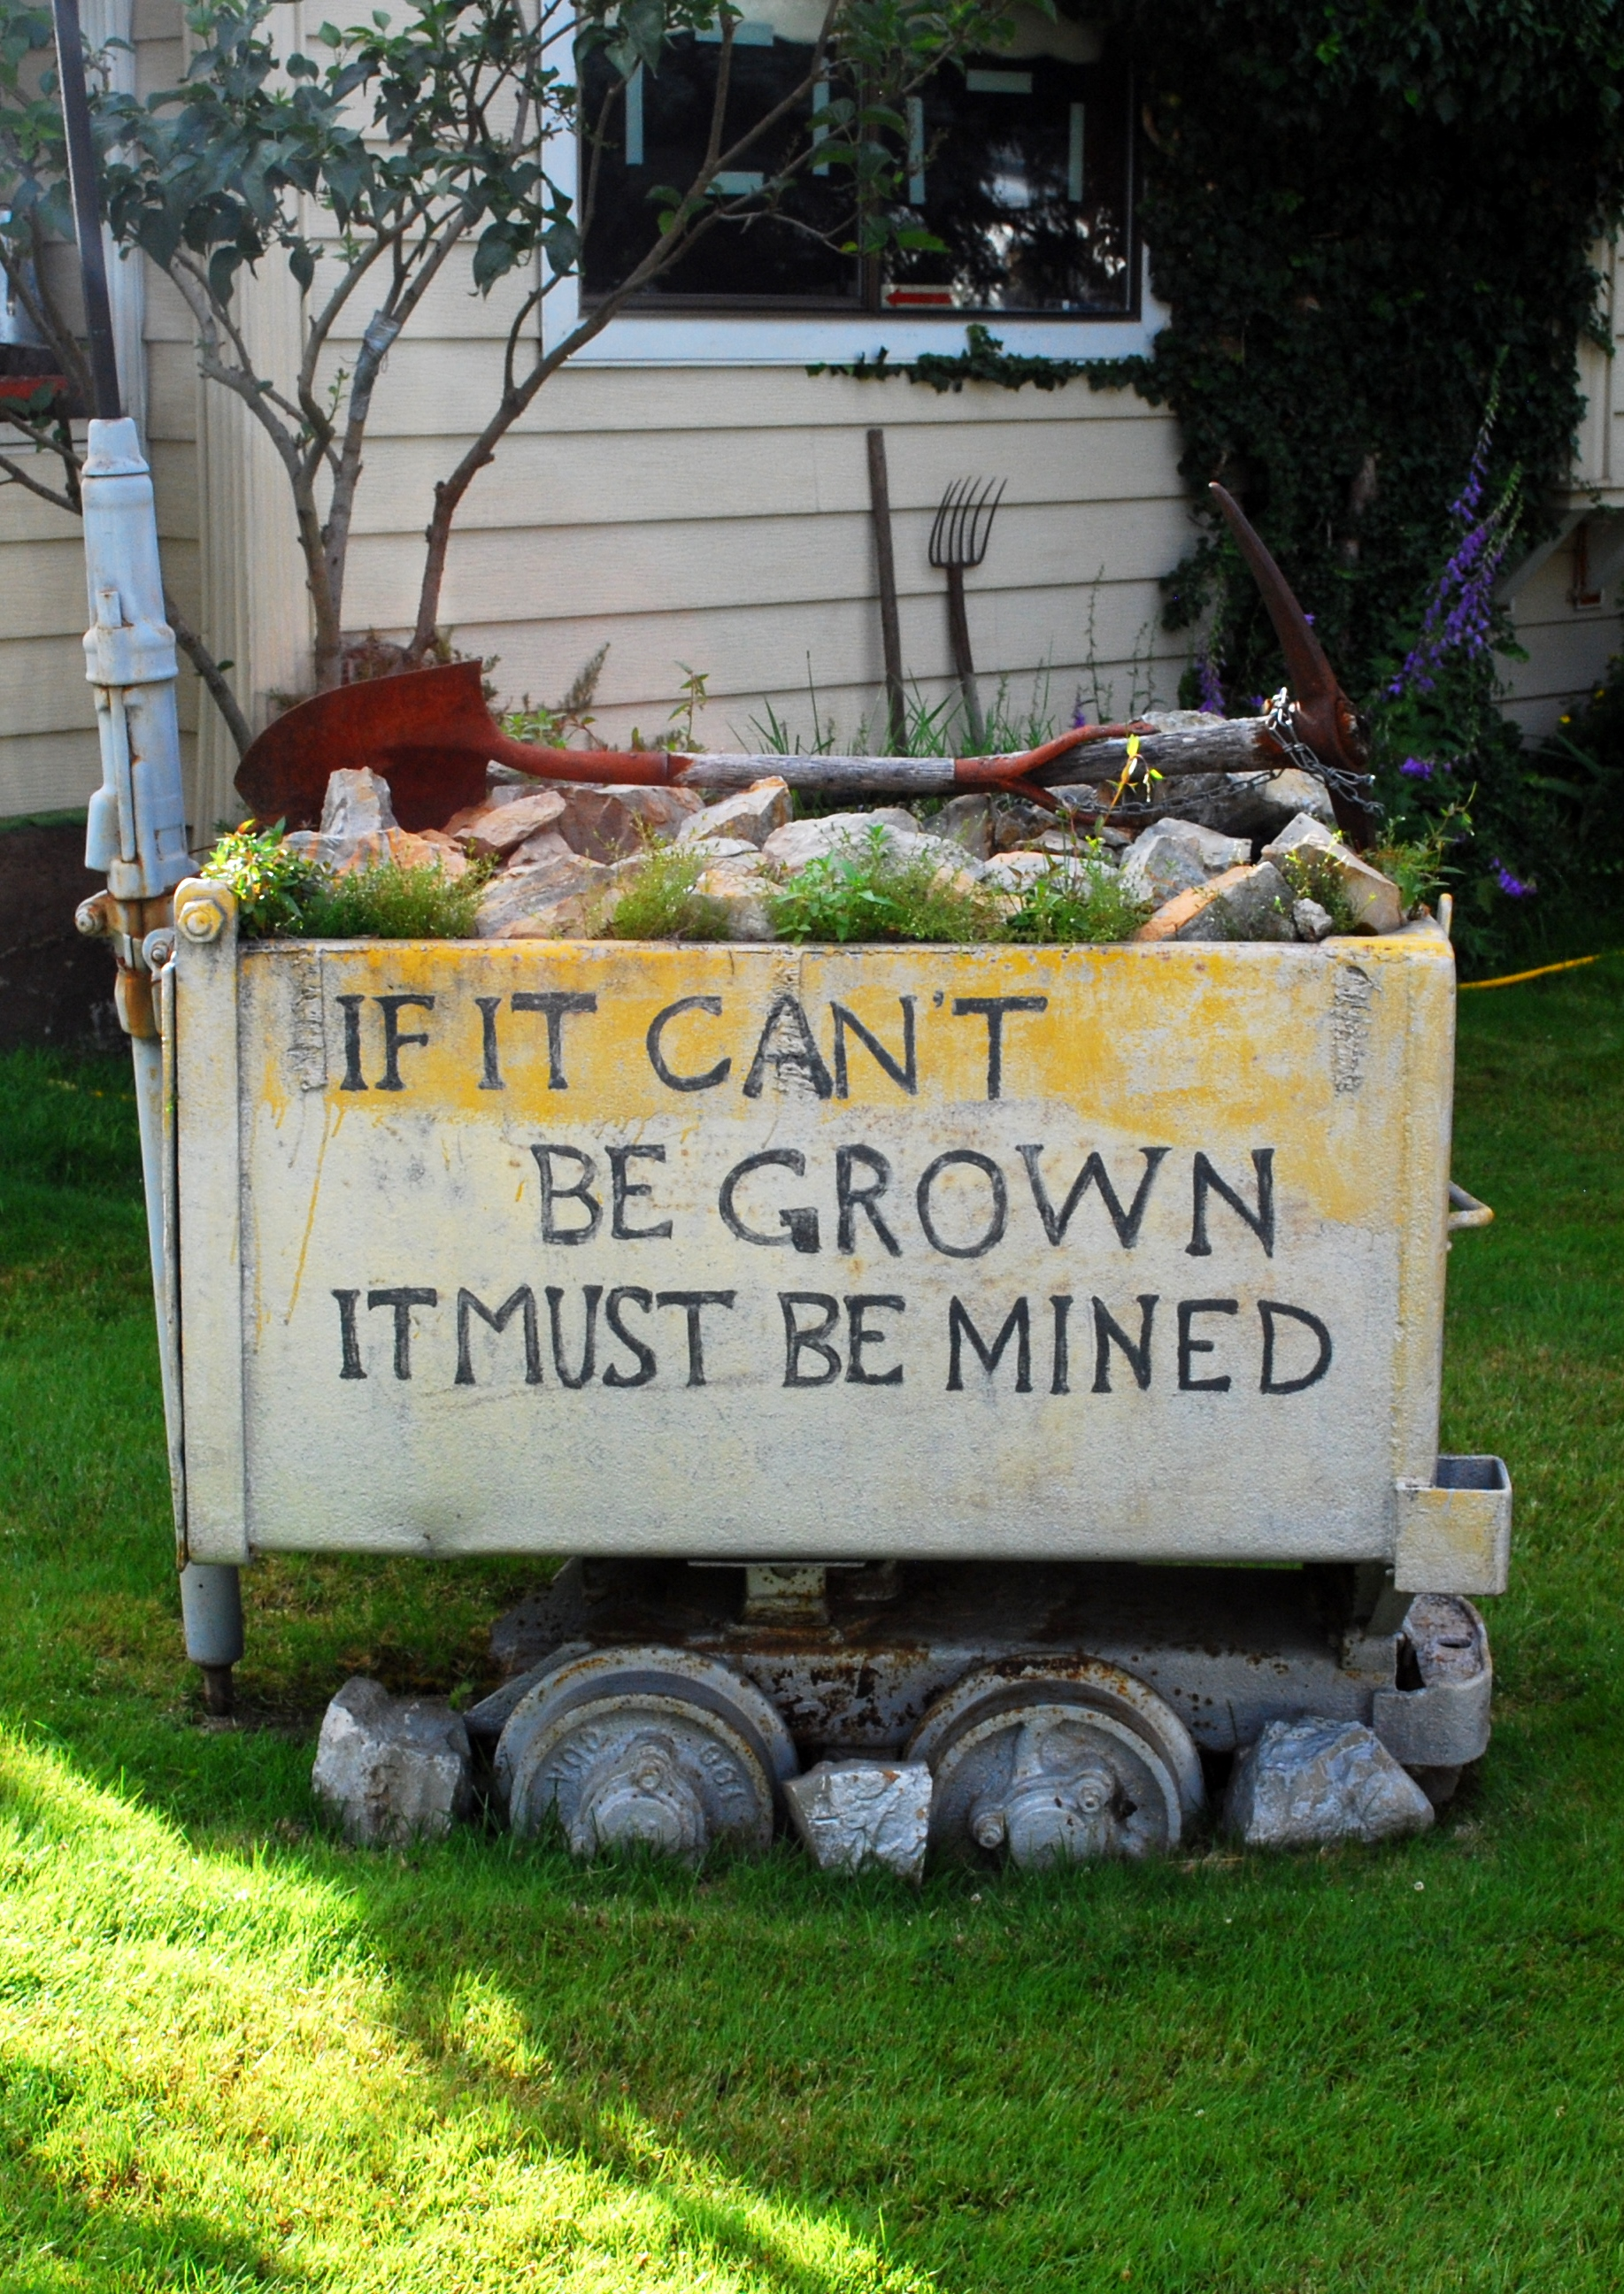 It if can't be grown...